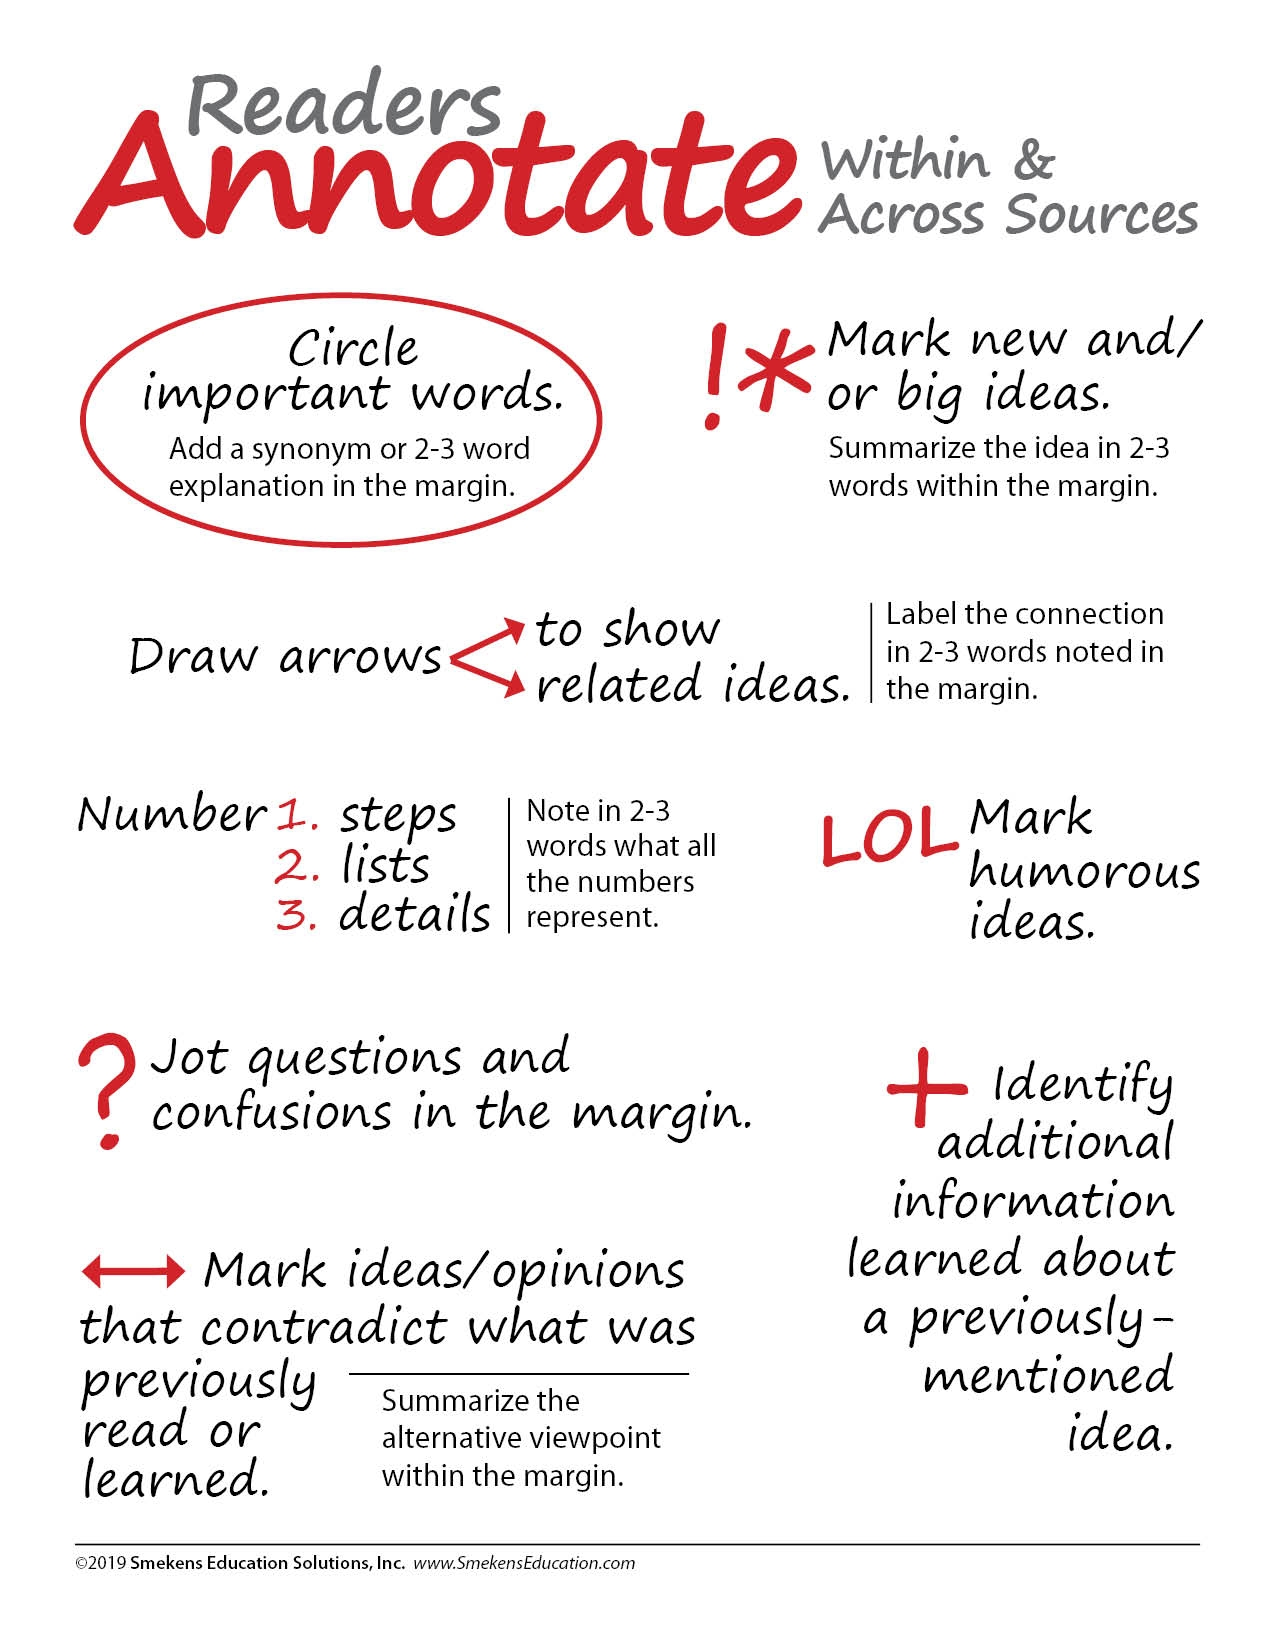 Simplify Annotation with Marks, Codes, & Abbreviations